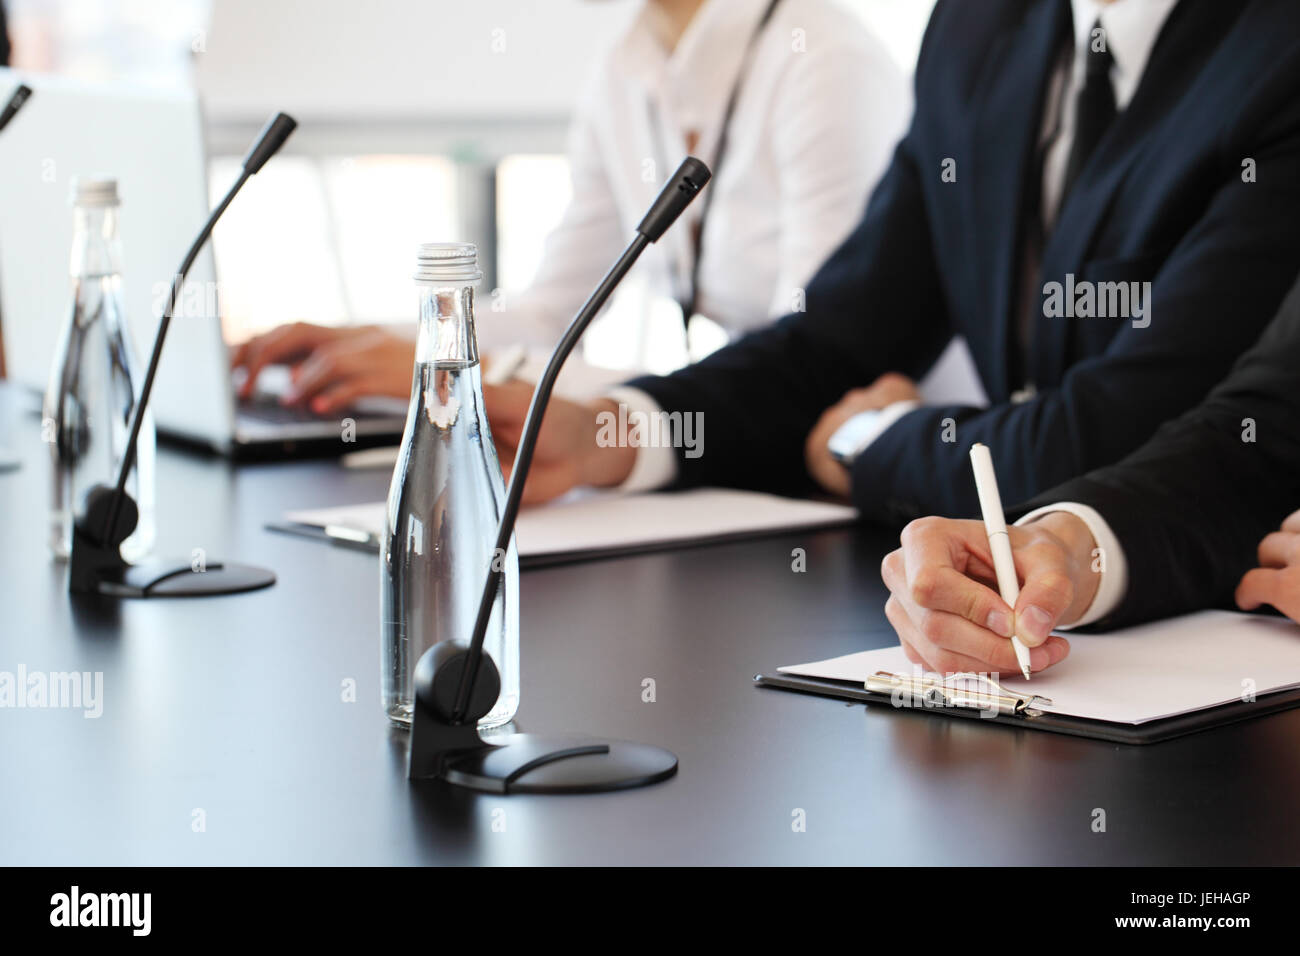 Group of speakers at business meeting at the table with microphones - Stock Image